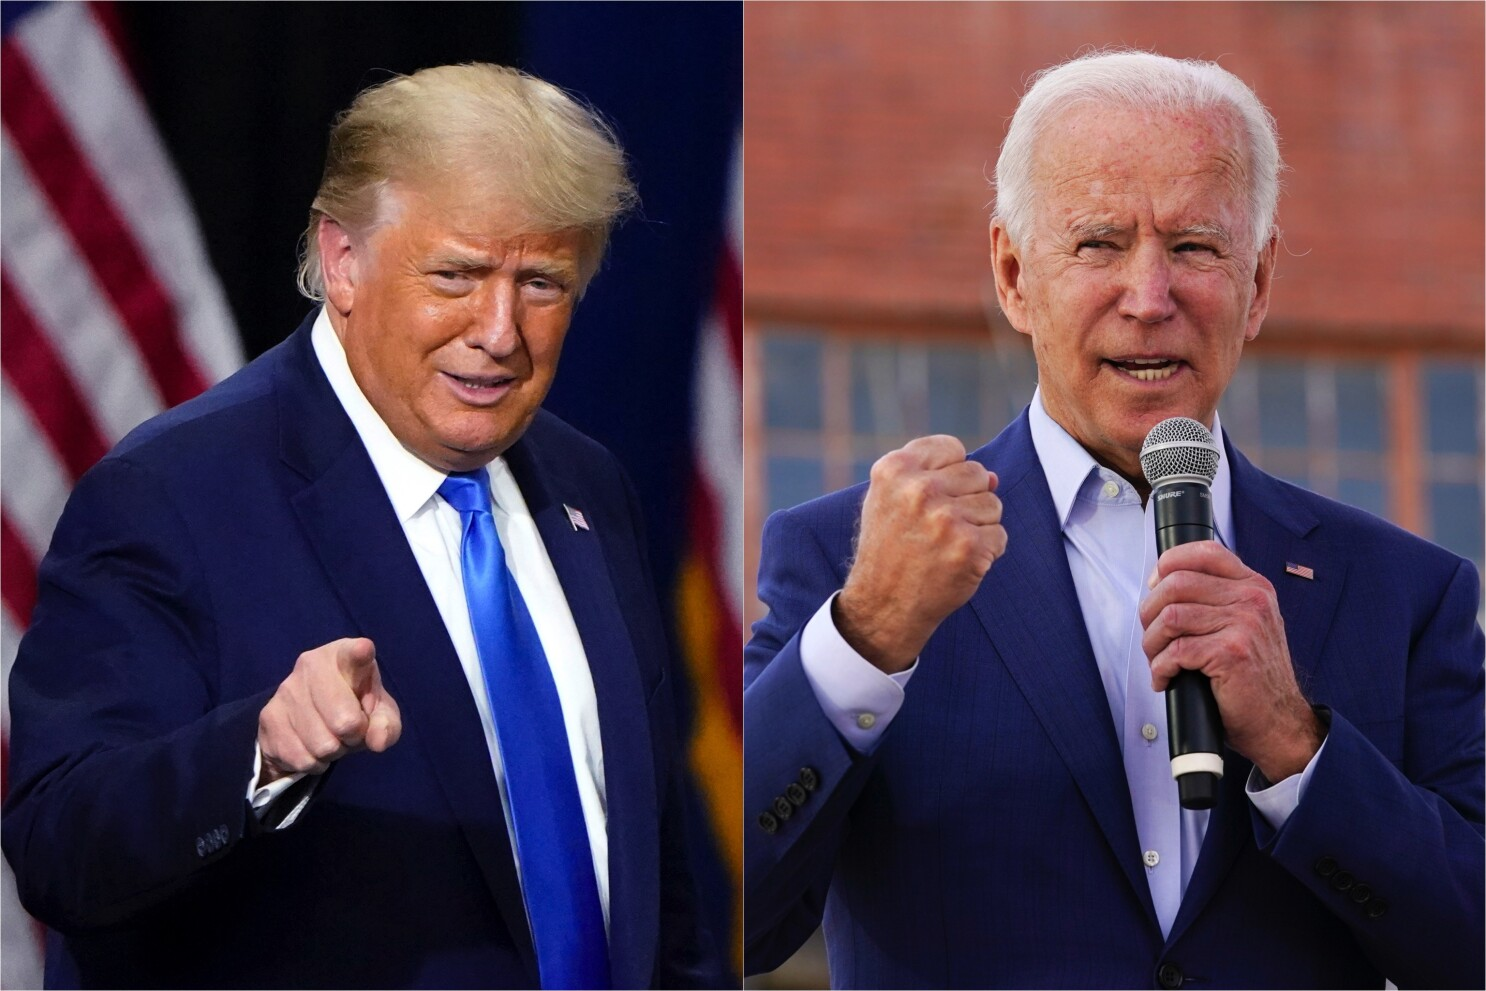 Trump and Biden may be 'super-agers,' study says - Los Angeles Times